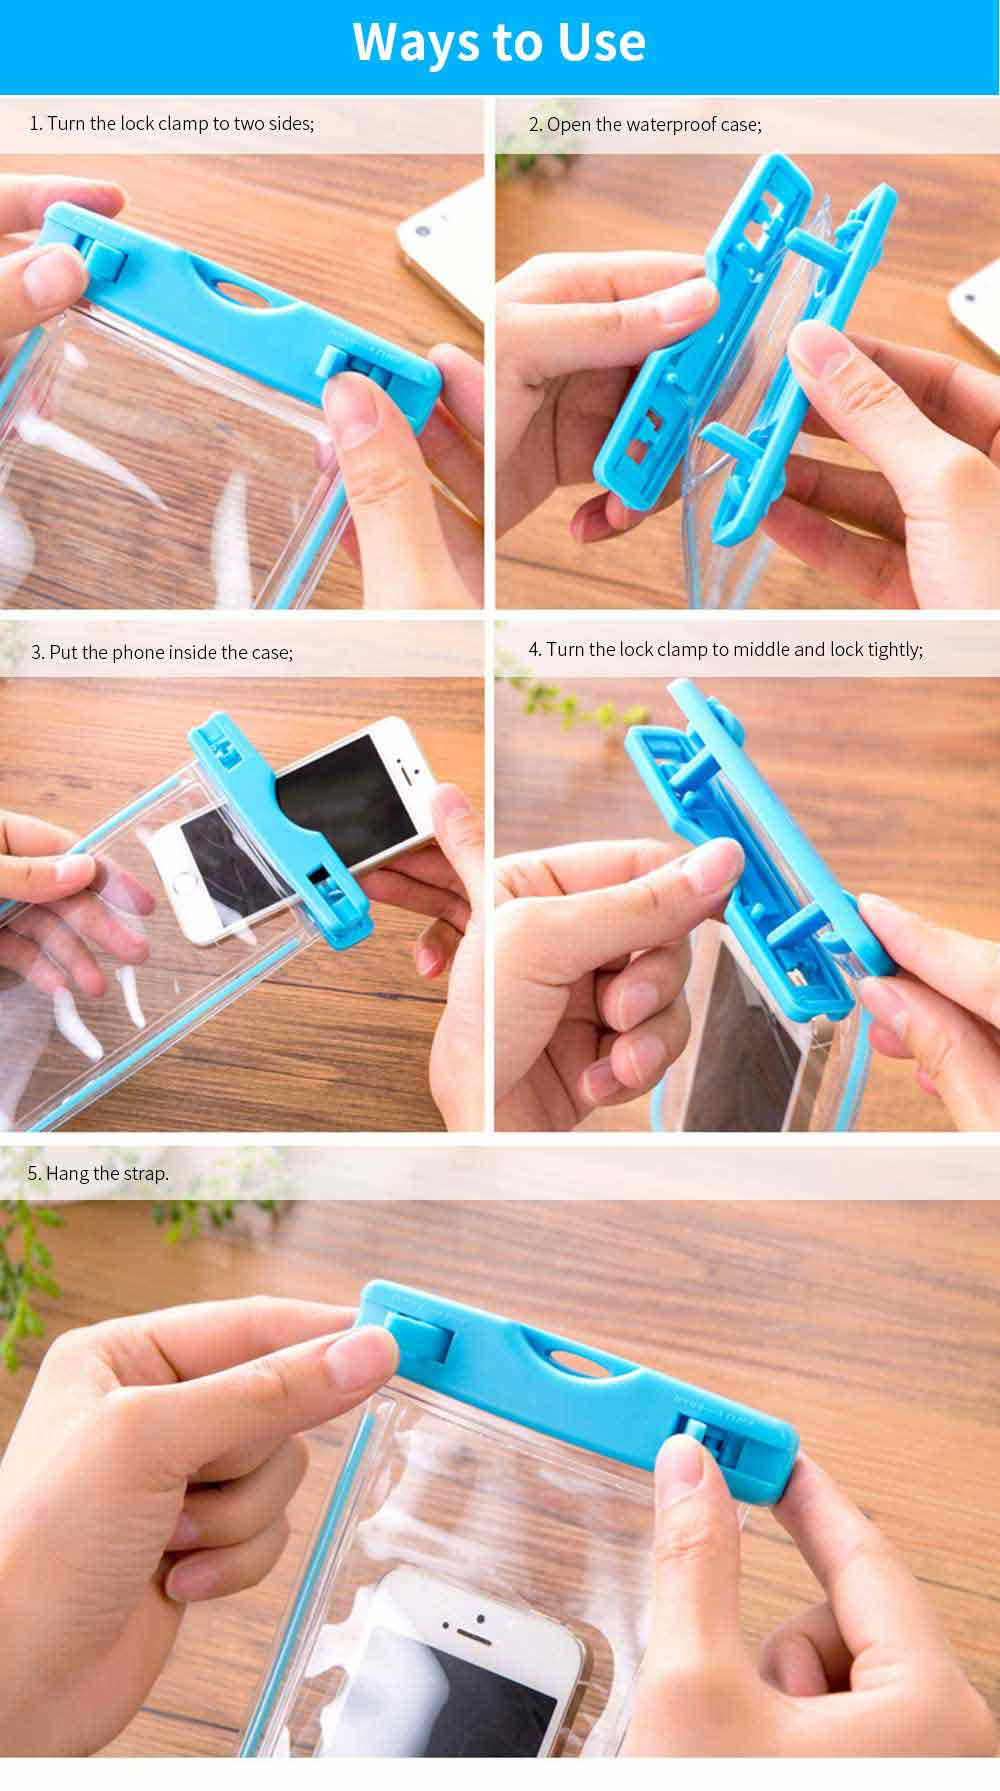 Diving Swimming Purpose Waterproof PVC Phone Case, High-end Transparent Phone Case for Outdoor Activities 7